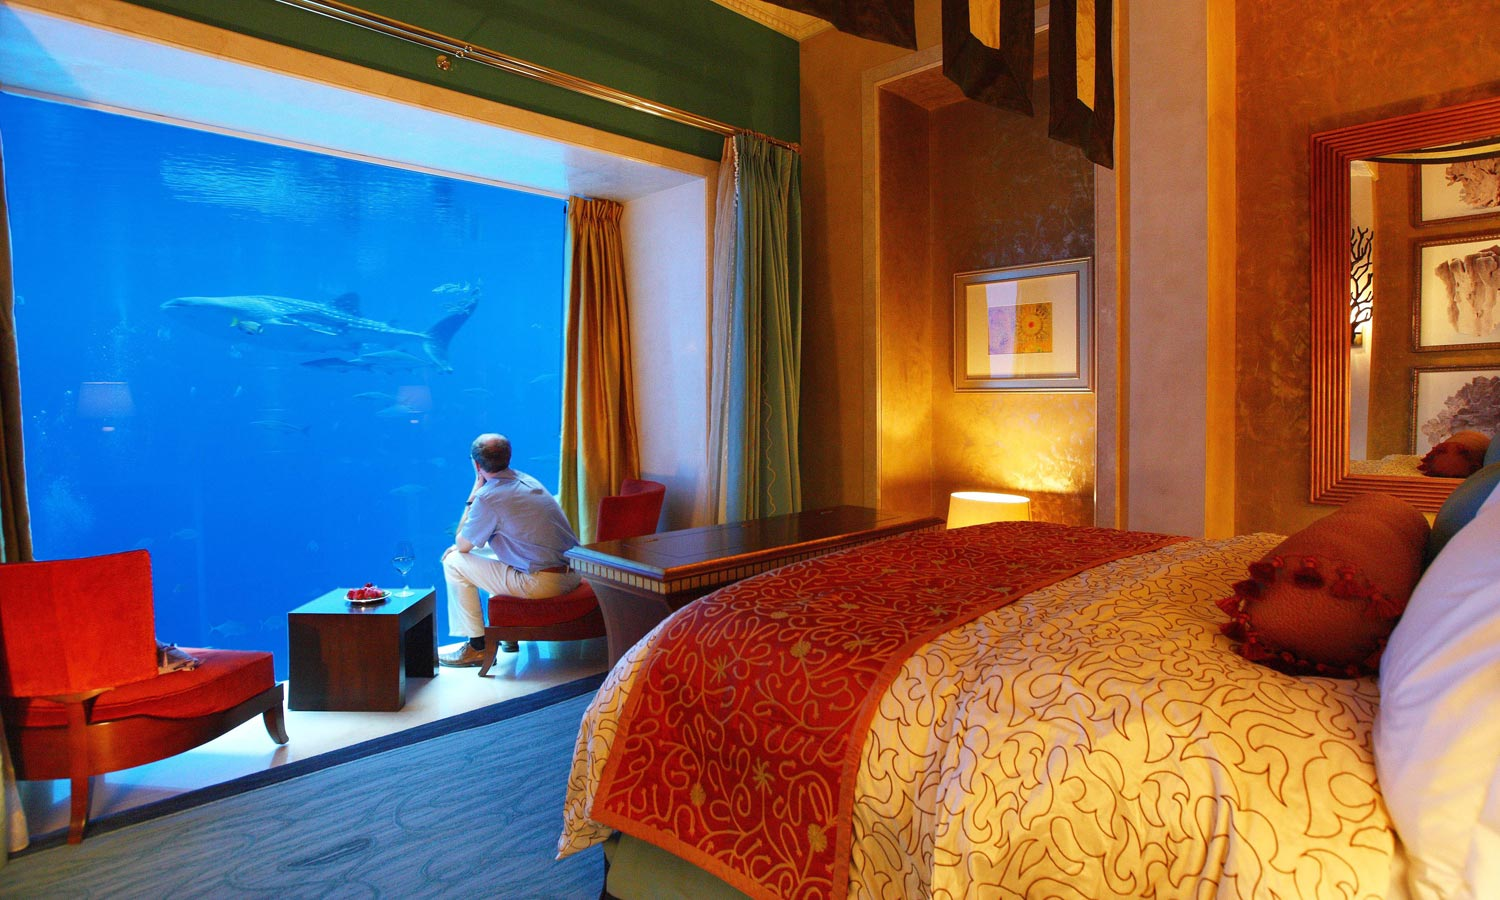 Underwater suite at the Atlantis Hotel.